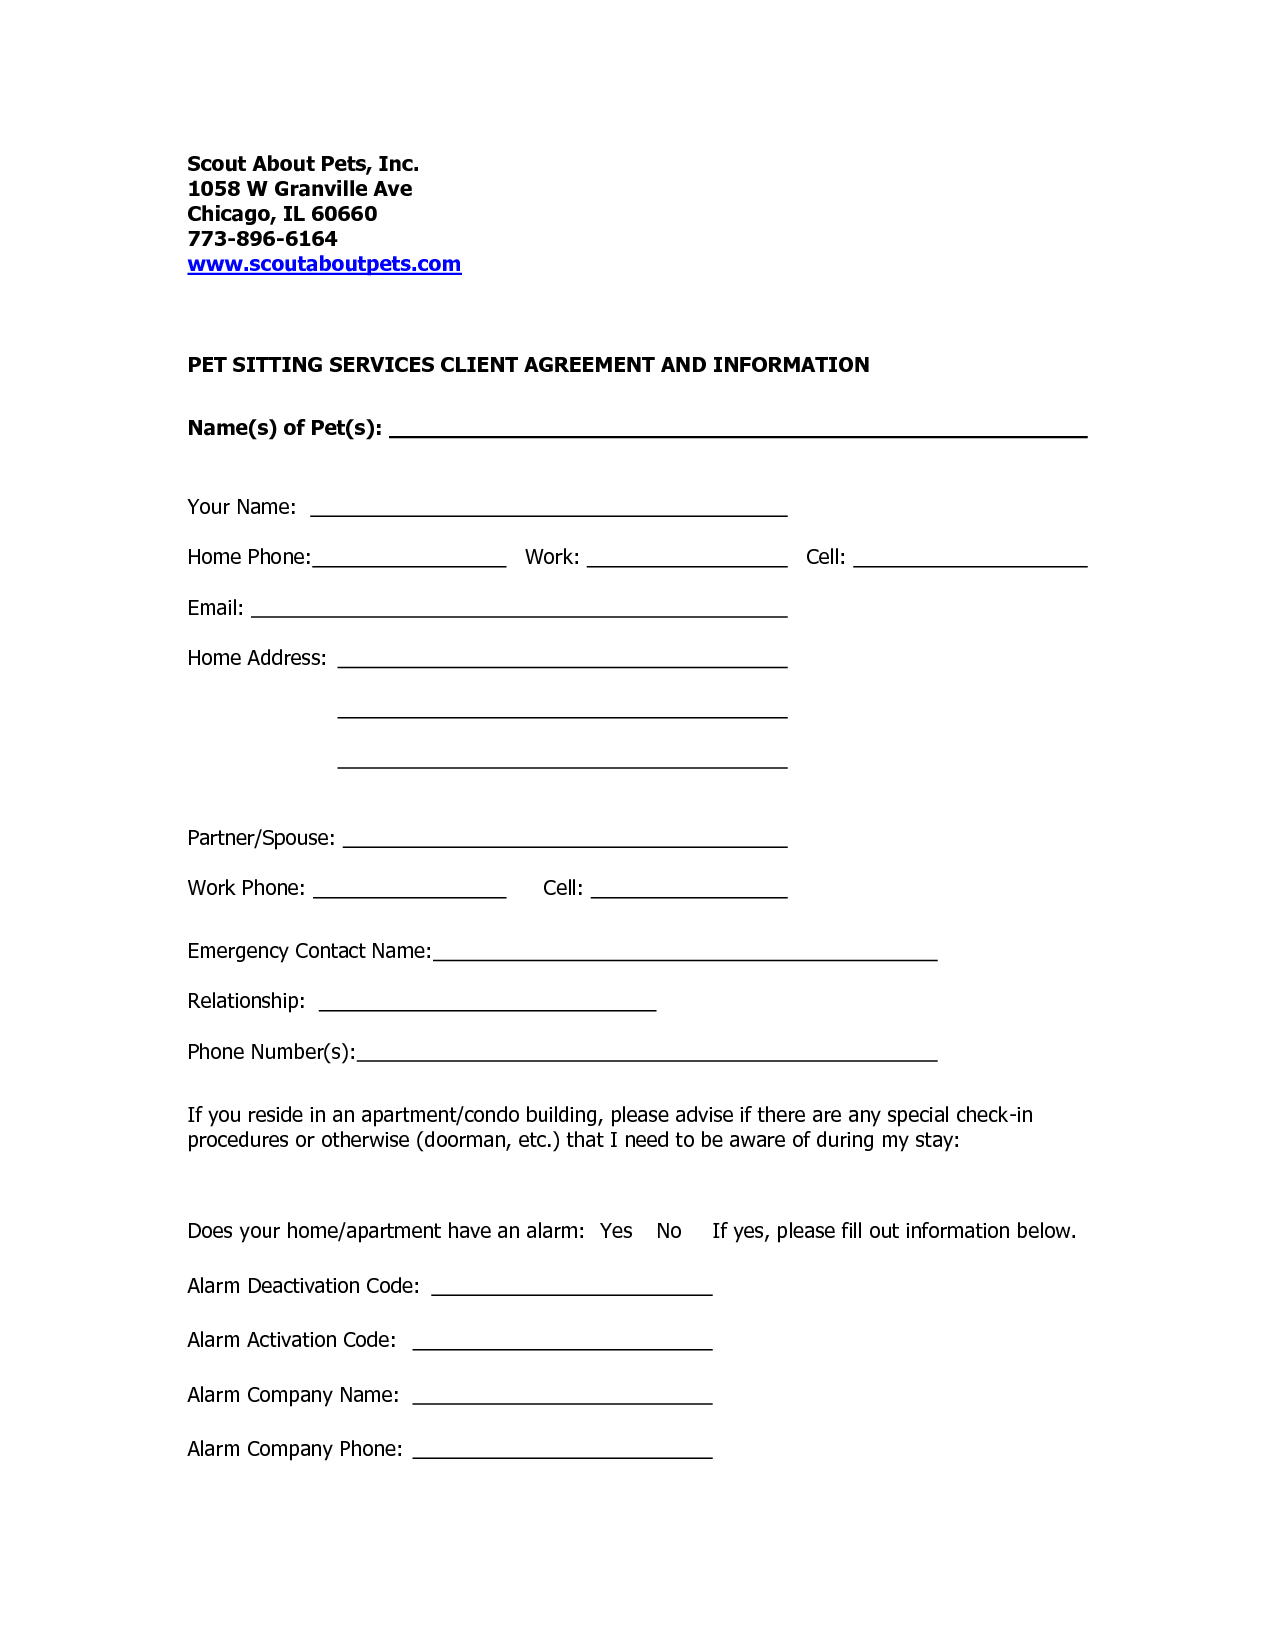 Professional Pet Sitting Forms Template Dog Sitting Form Scout About Pets Inc Mutt Moms